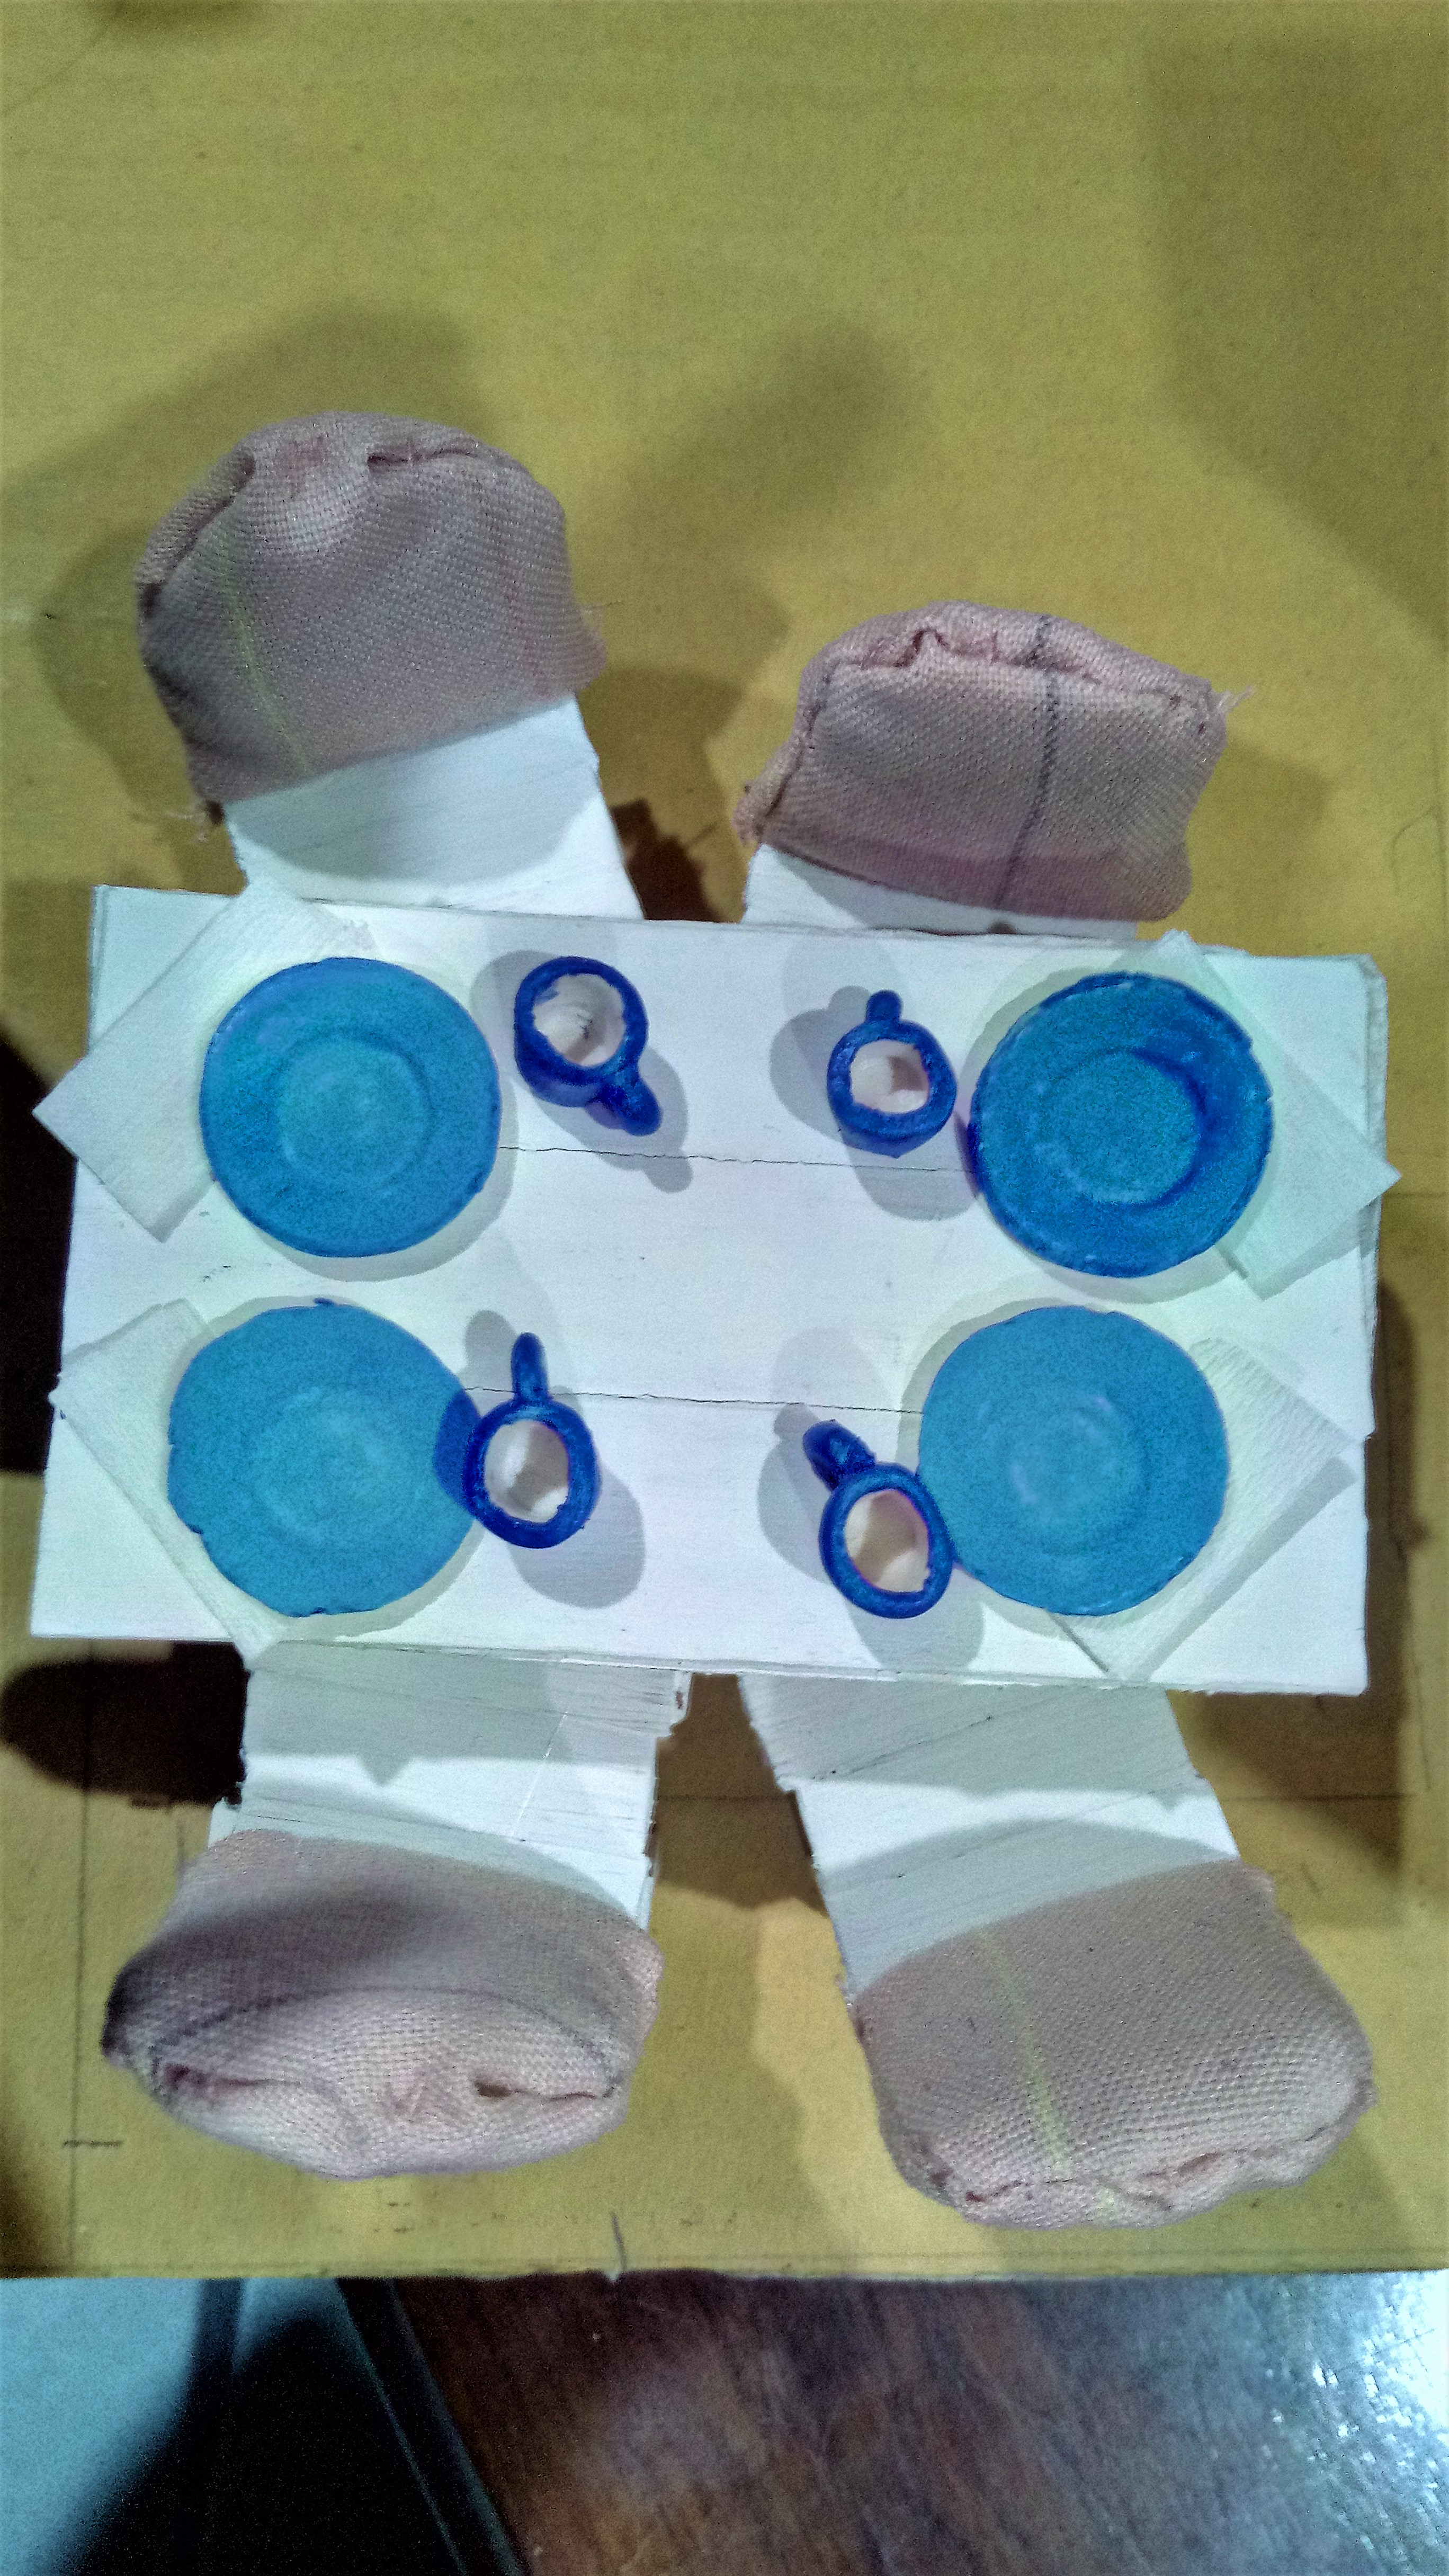 Picture of The Finished Plates & Cups on a Table